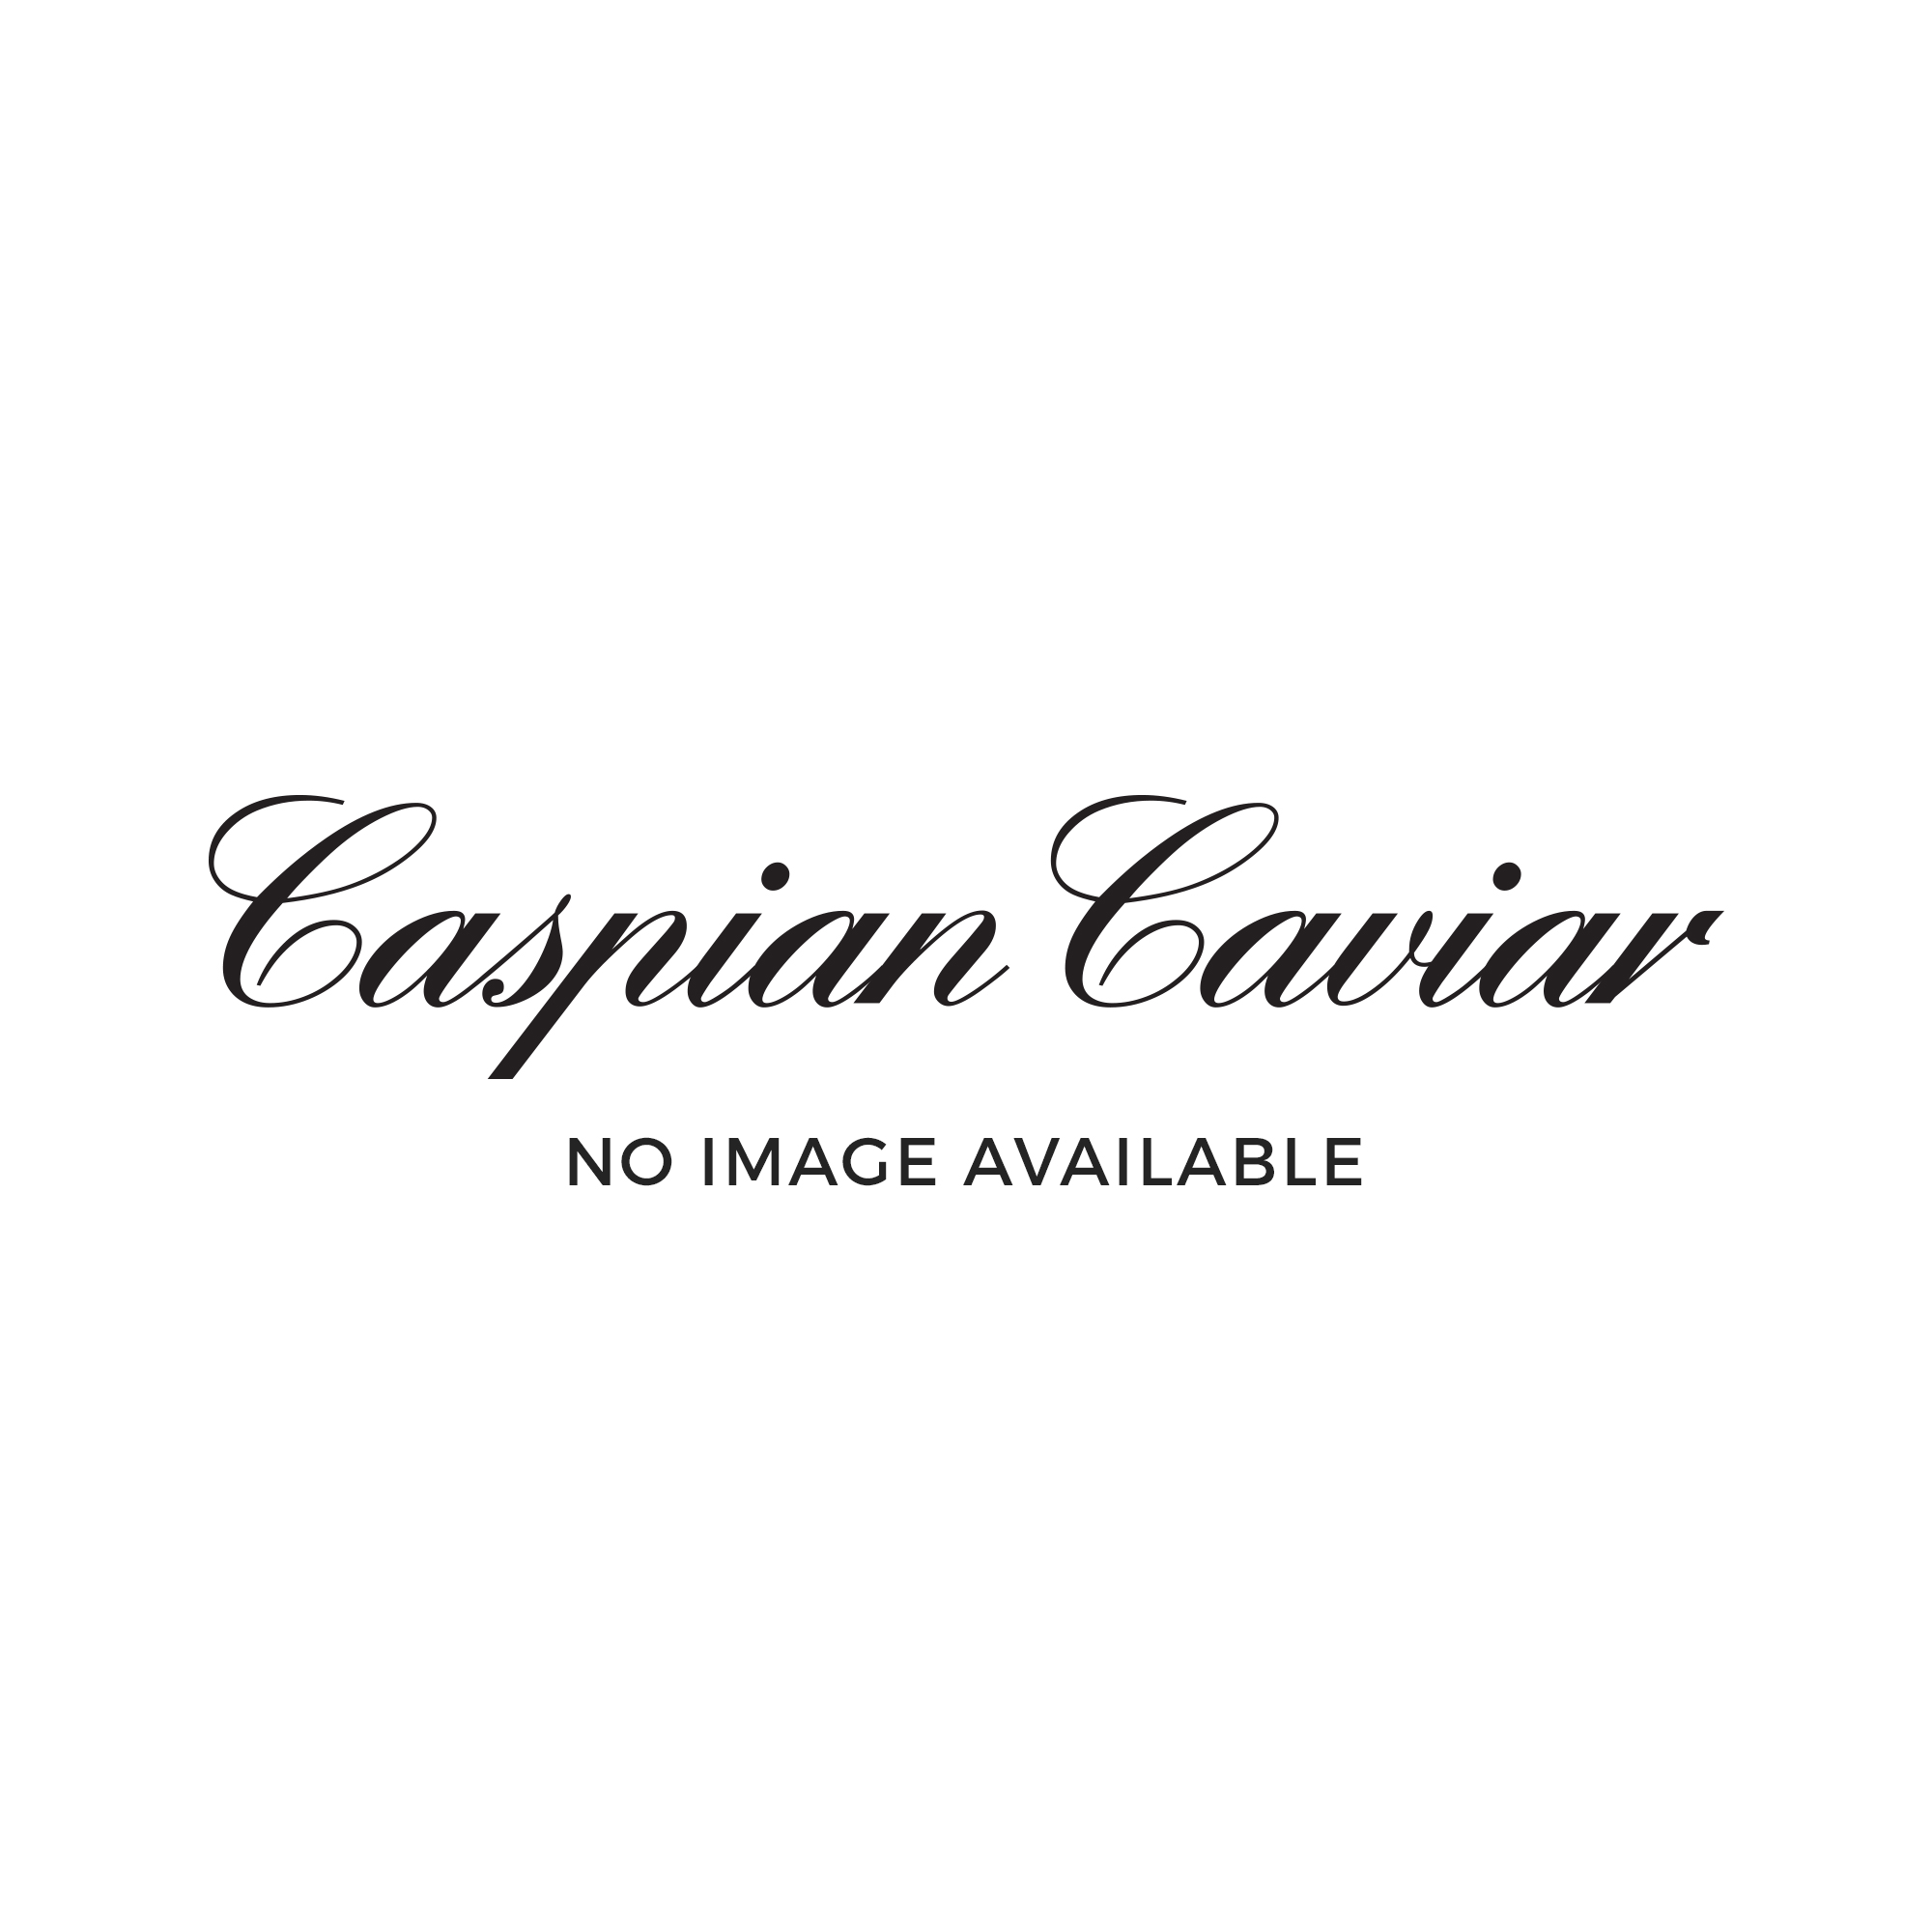 Caspian Caviar Three Cs